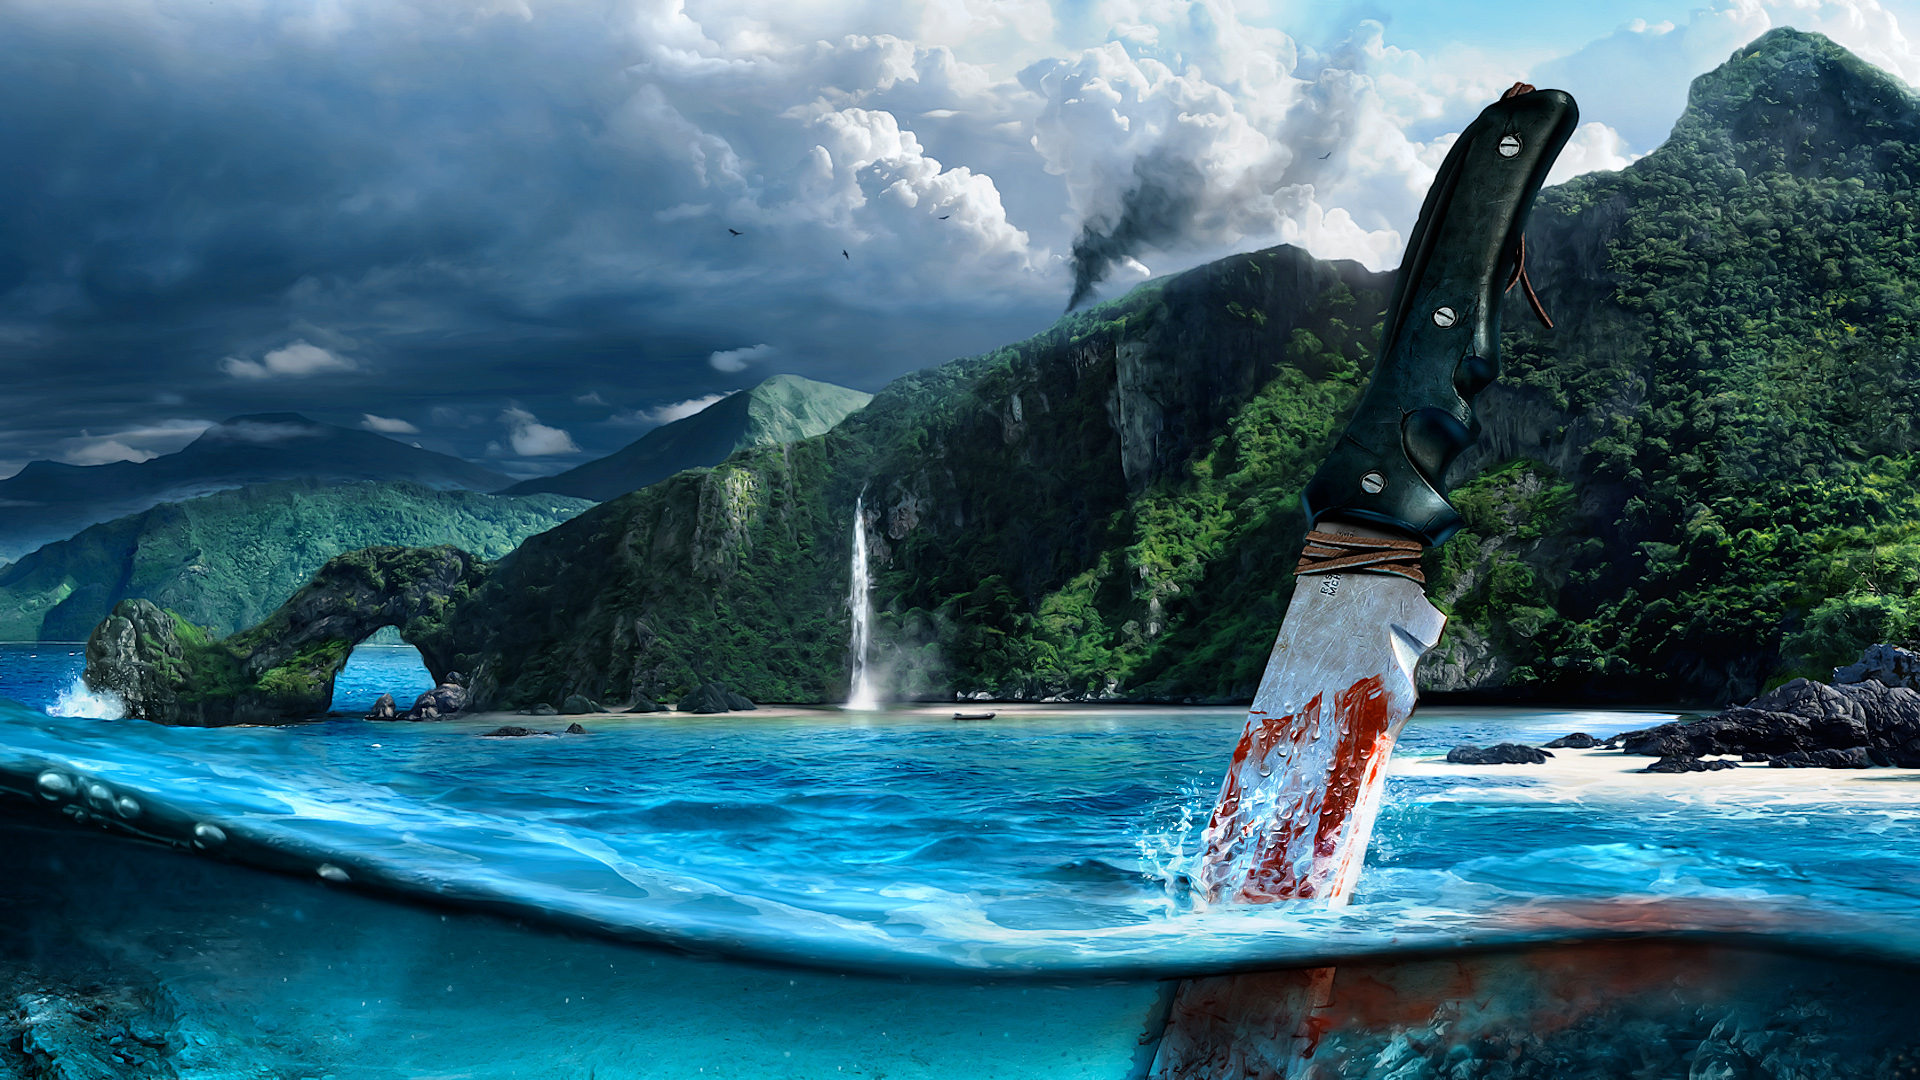 Far Cry 3 Wallpapers in HD Page 3 1920x1080